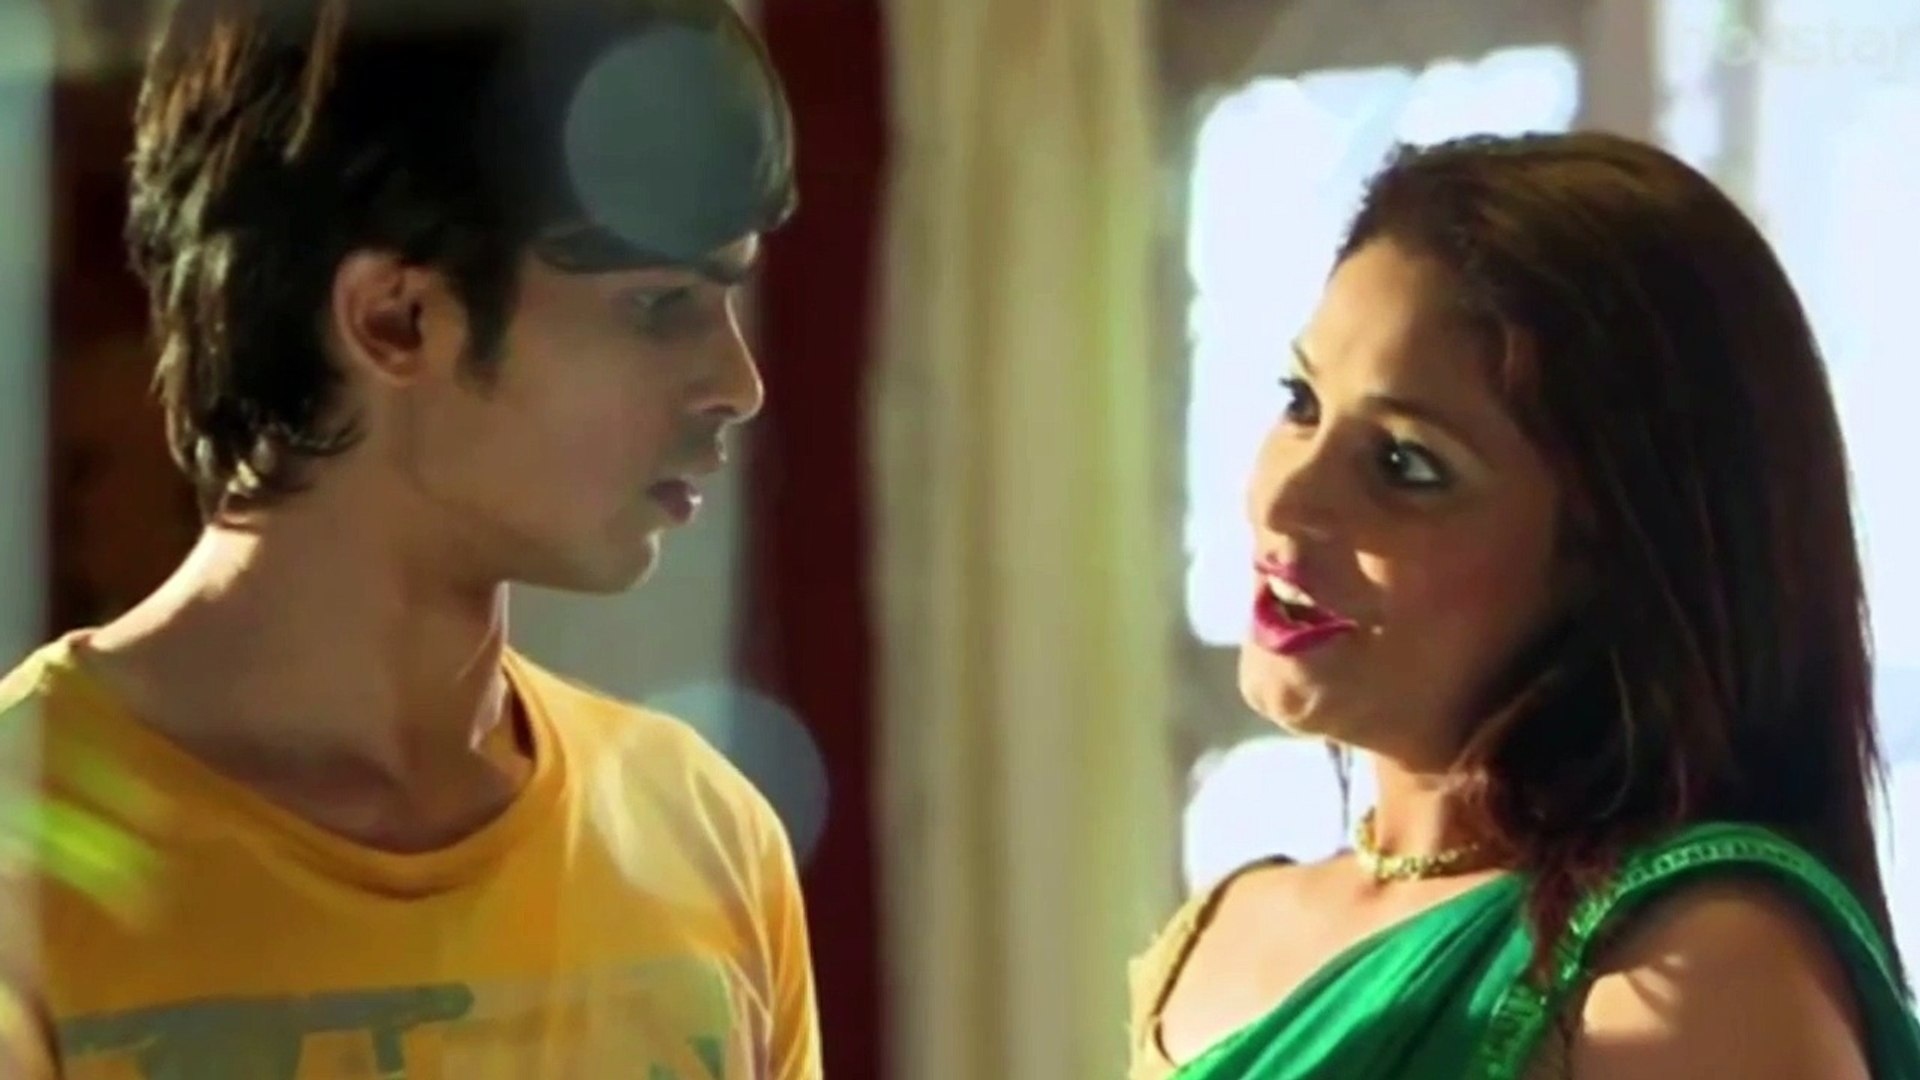 Savdhaan India - Friend's mother attraction - Forced Physical Relationship